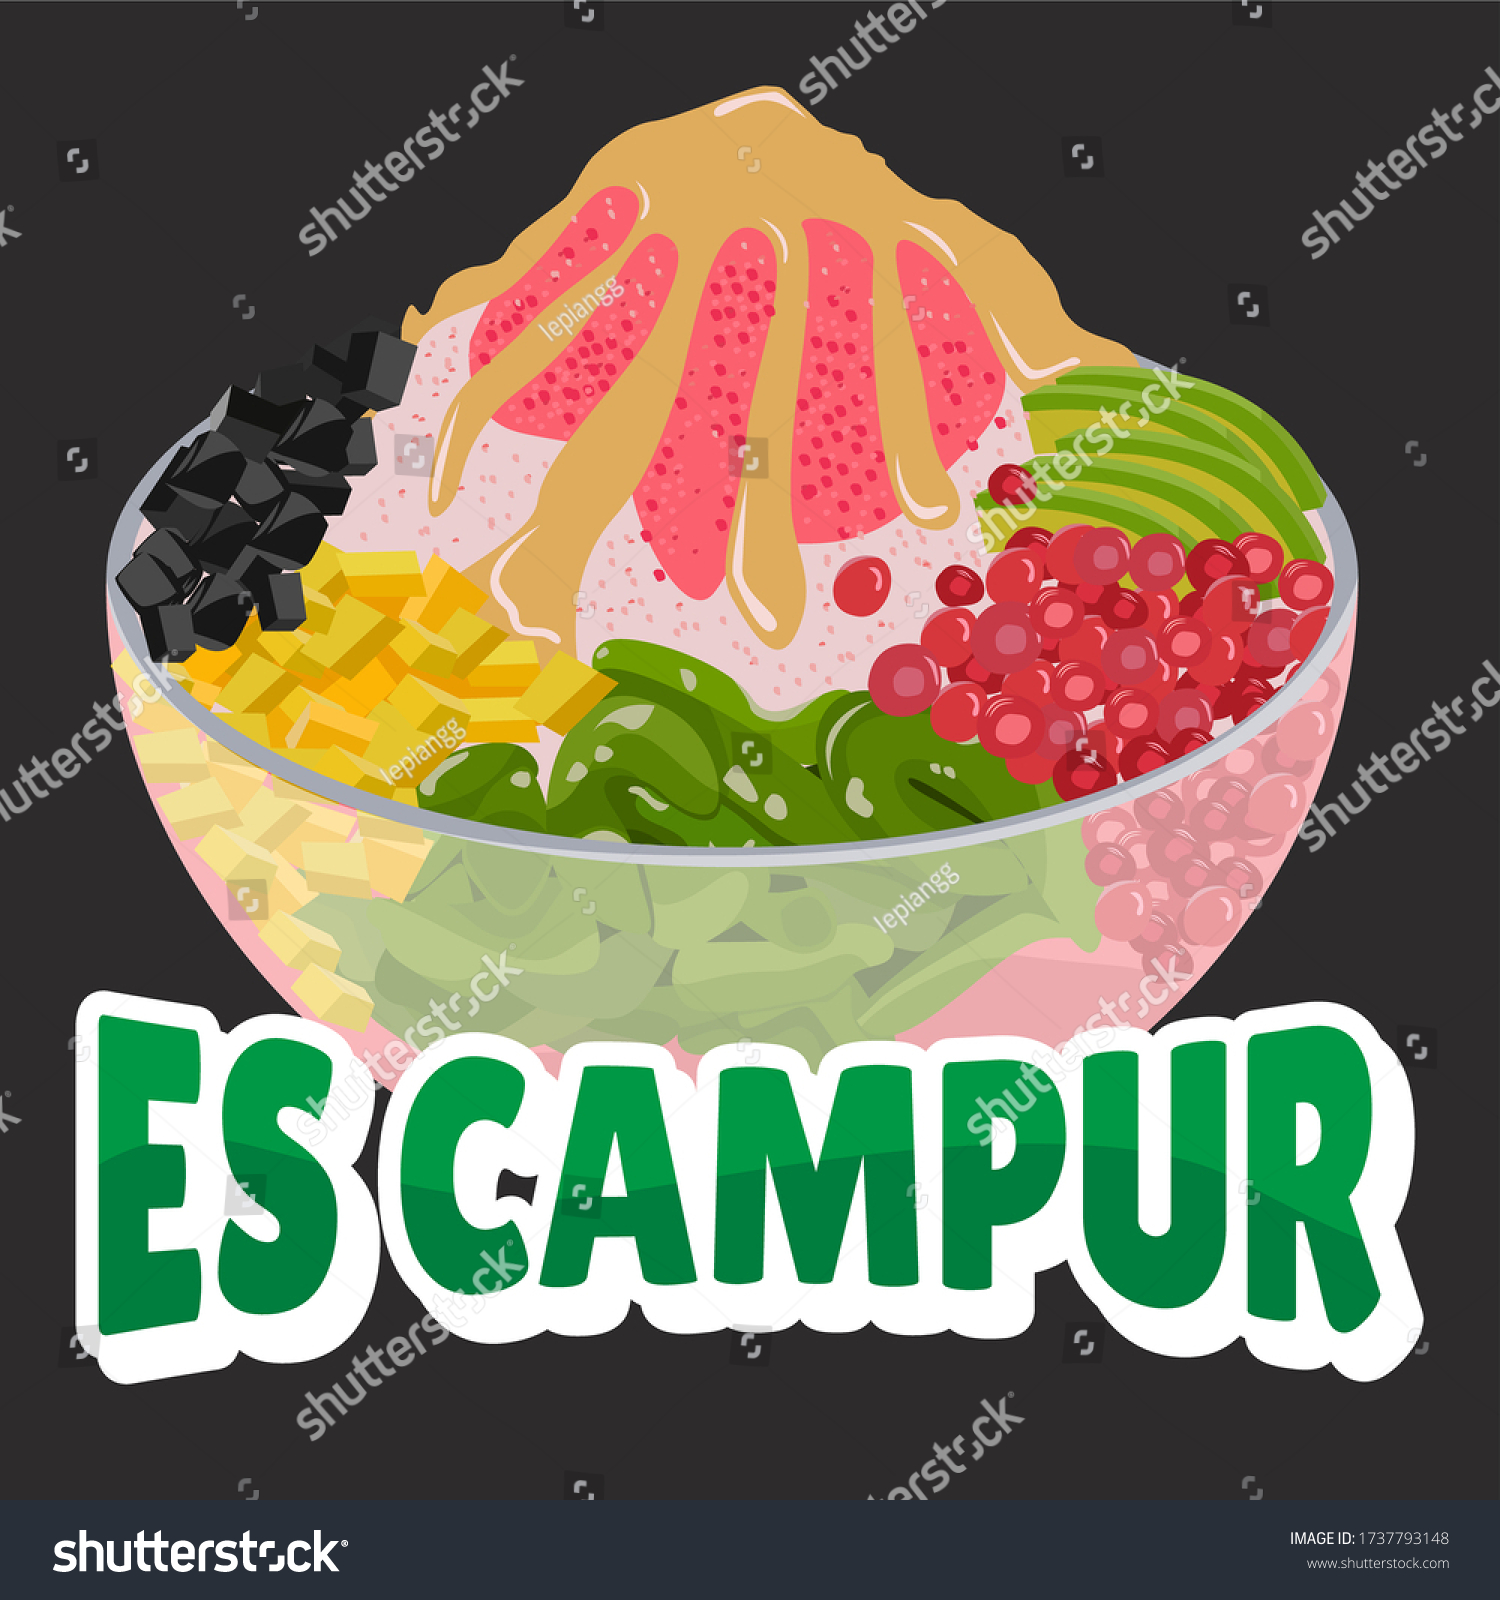 Es Campur One Typical Indonesian Drinks Stock Vector Royalty Free 1737793148